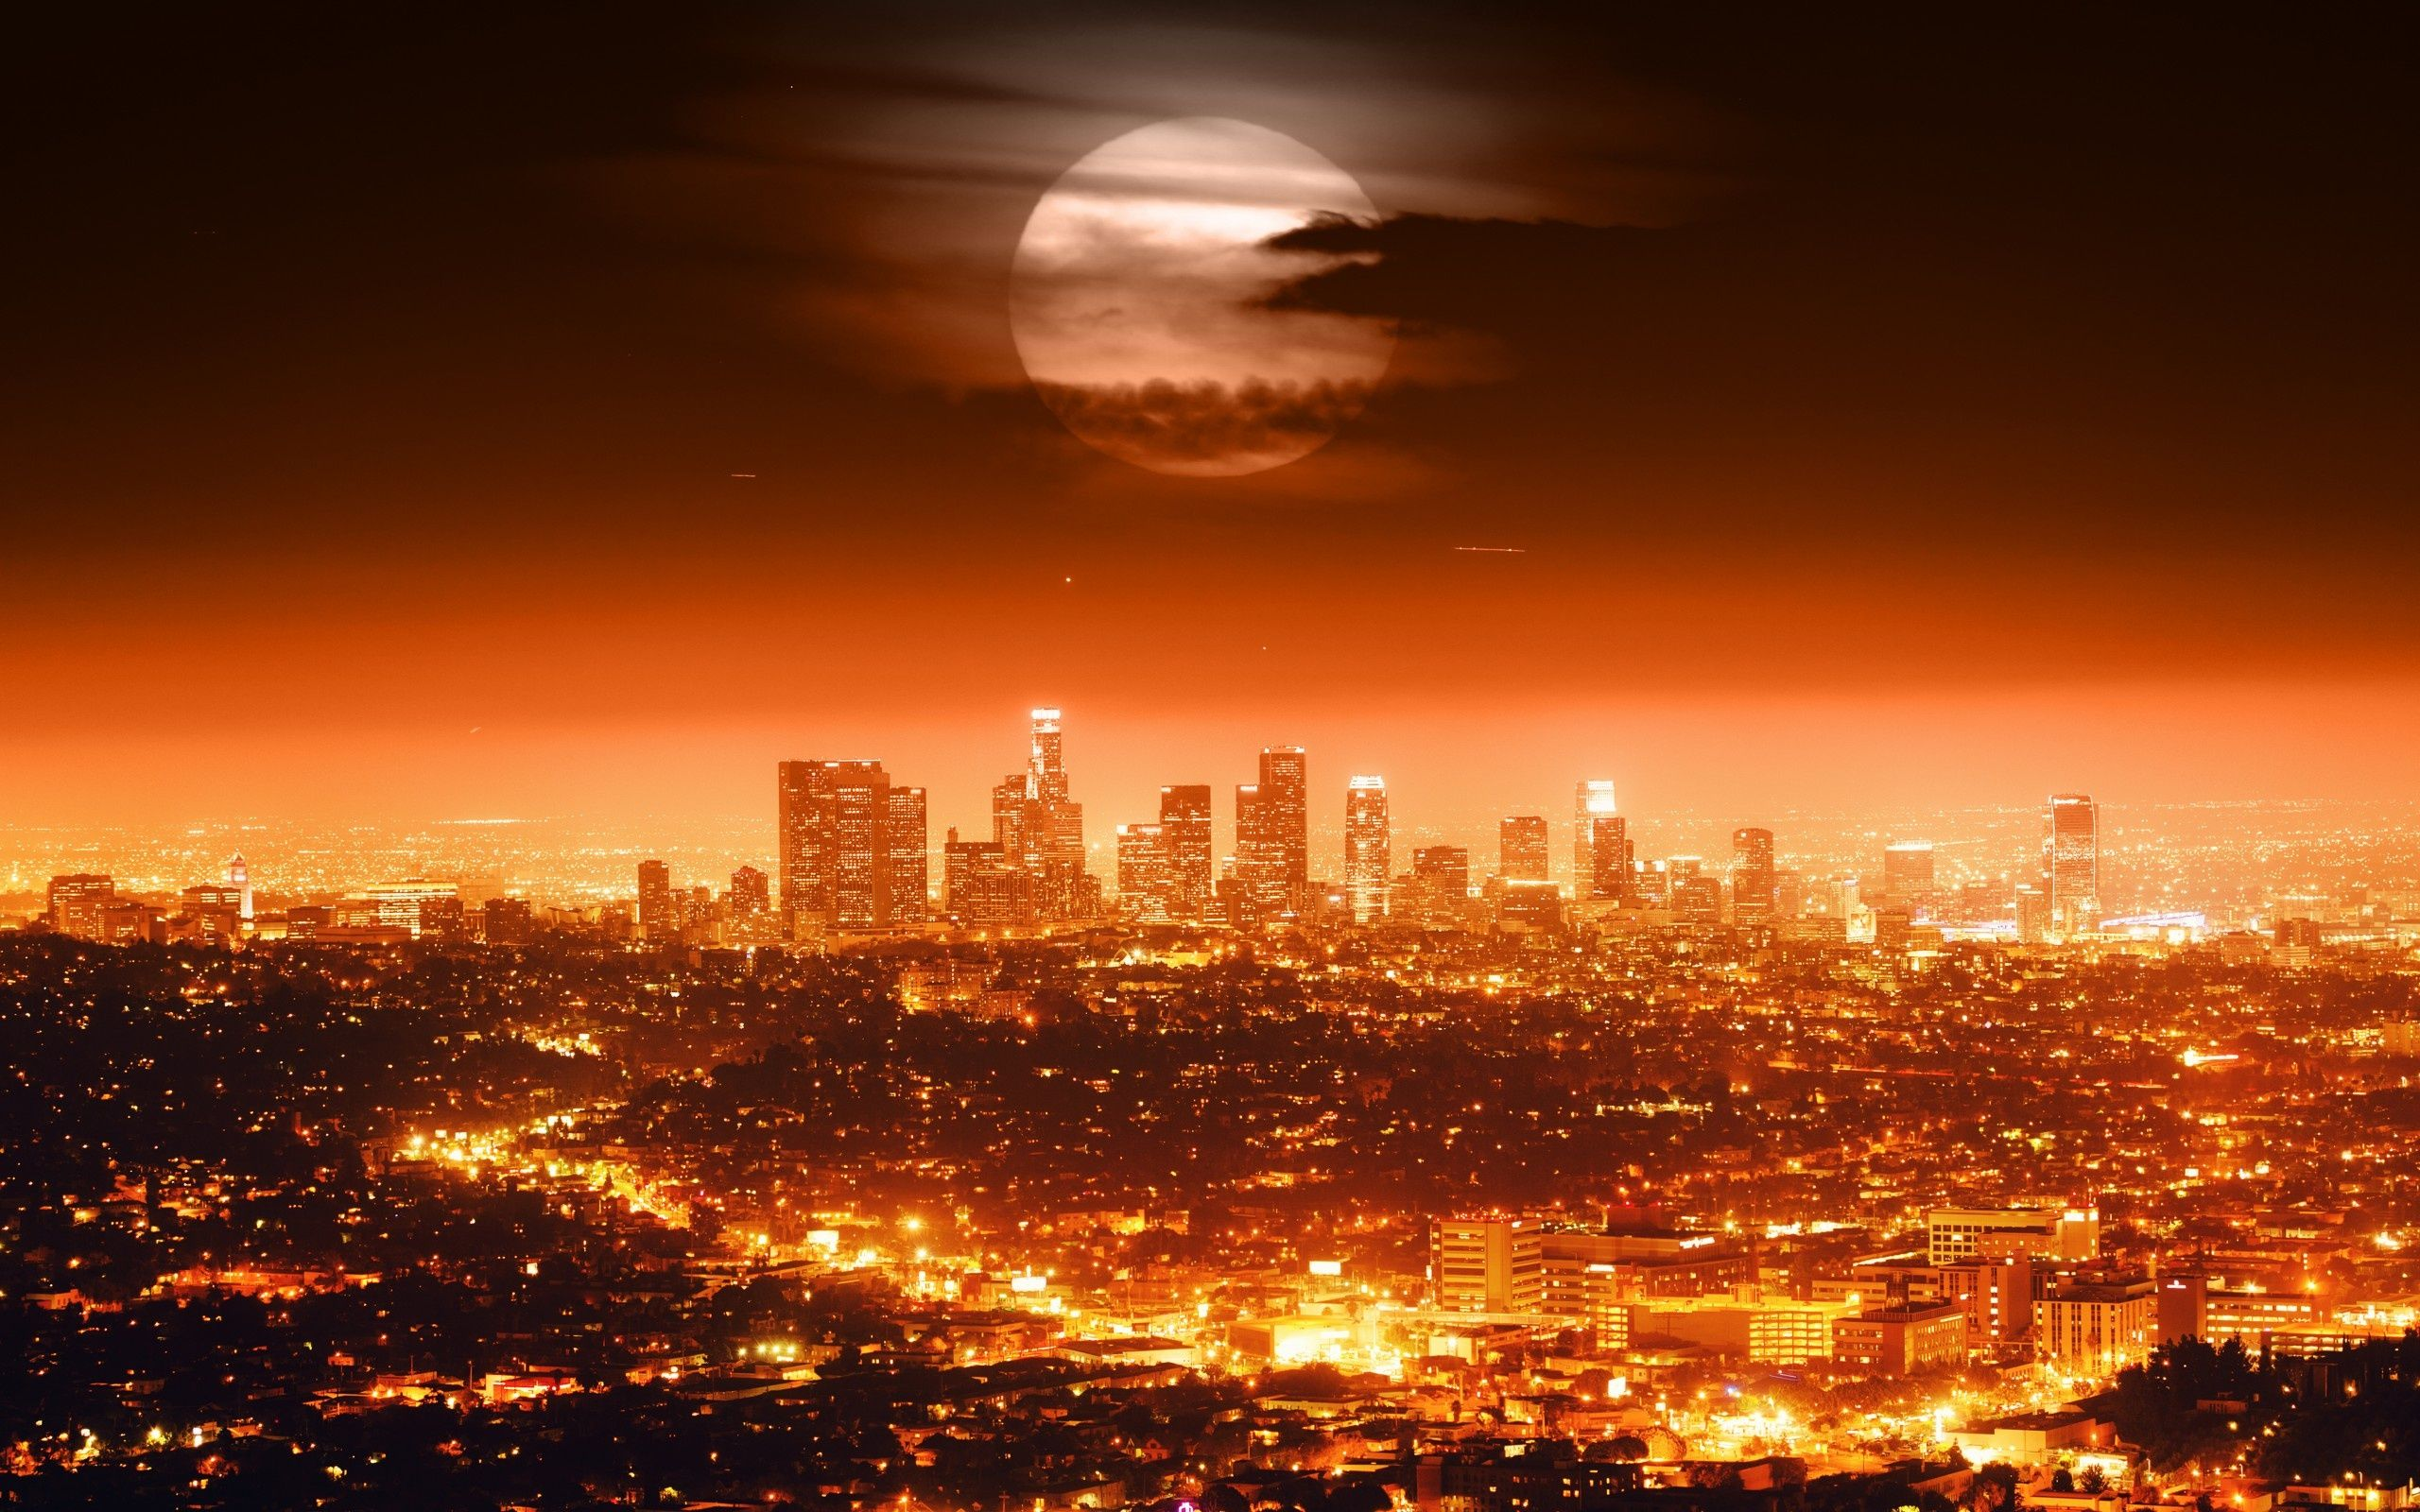 Beautiful Wallpaper Night Los Angeles - ee9f421c66a64671df0a14c7b50242d8  Picture-453082.jpg